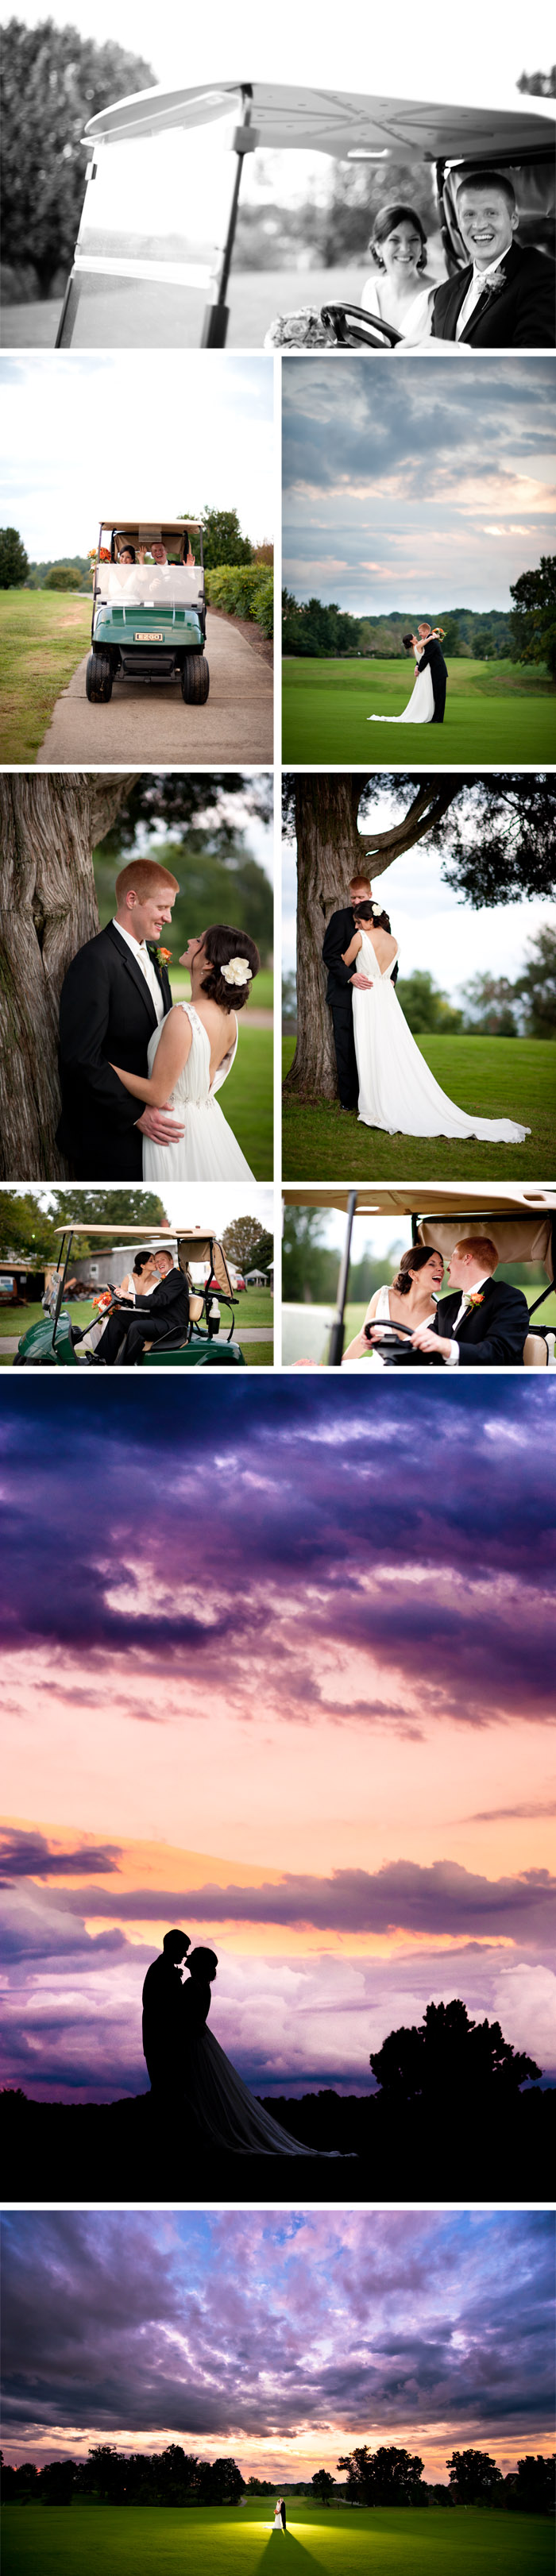 formals1 Jessica + Sam | Clemmons, NC Wedding